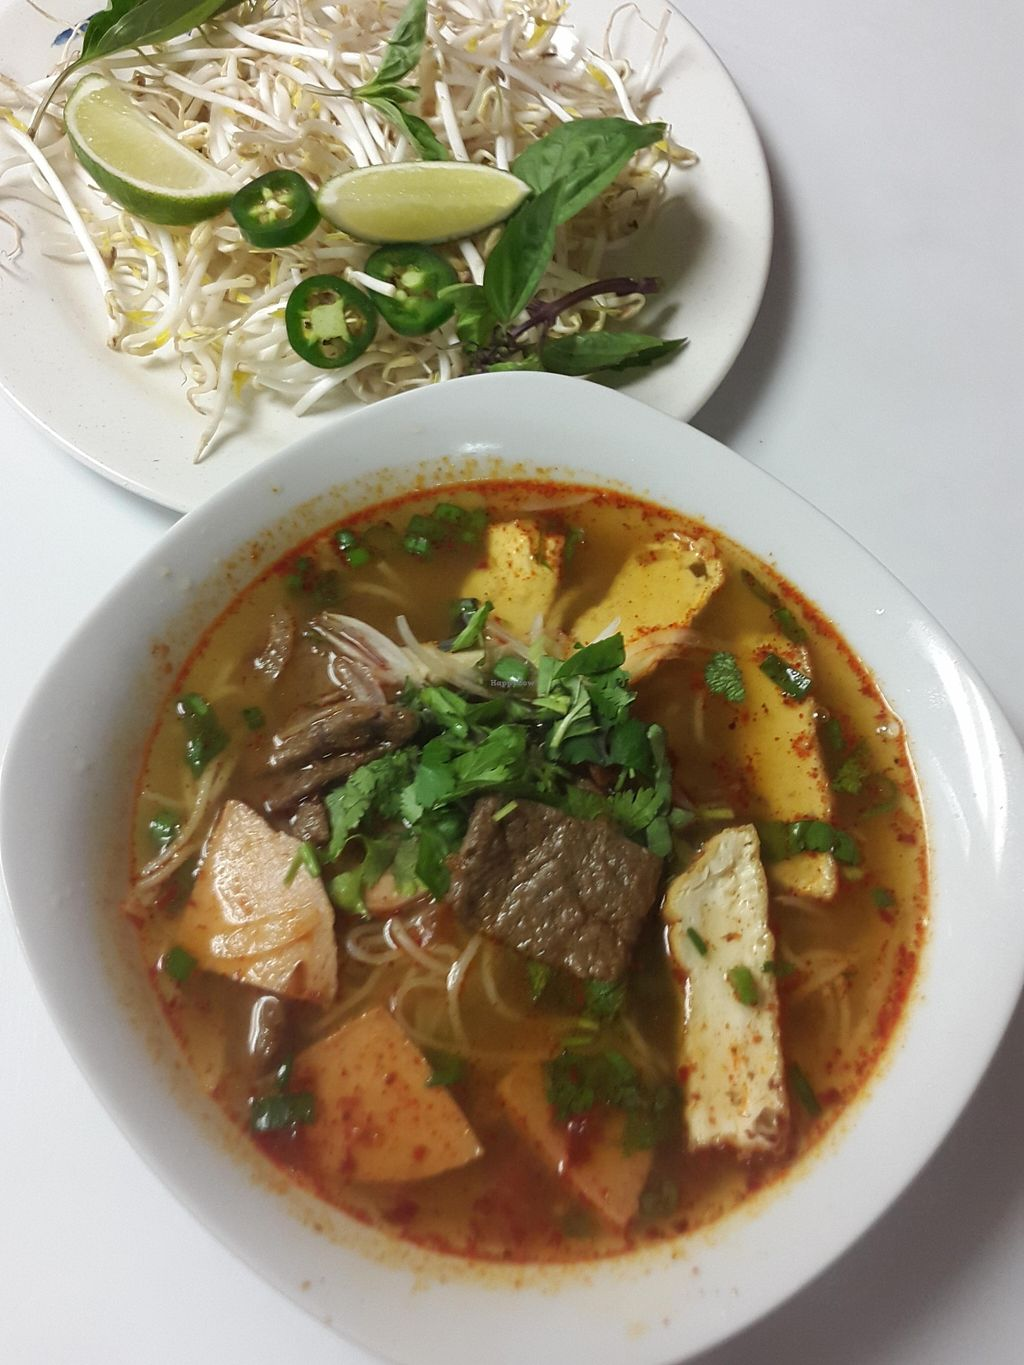 """Photo of Loving Vegan Market & Cuisine  by <a href=""""/members/profile/Loving%20Vegan%20Cuisine"""">Loving Vegan Cuisine</a> <br/>How about a good hot soup for a chilly winter evening. This popular Bun Hue originating from Central Aulac (Vietnam) shall satisfy you <br/> March 11, 2016  - <a href='/contact/abuse/image/67993/139634'>Report</a>"""